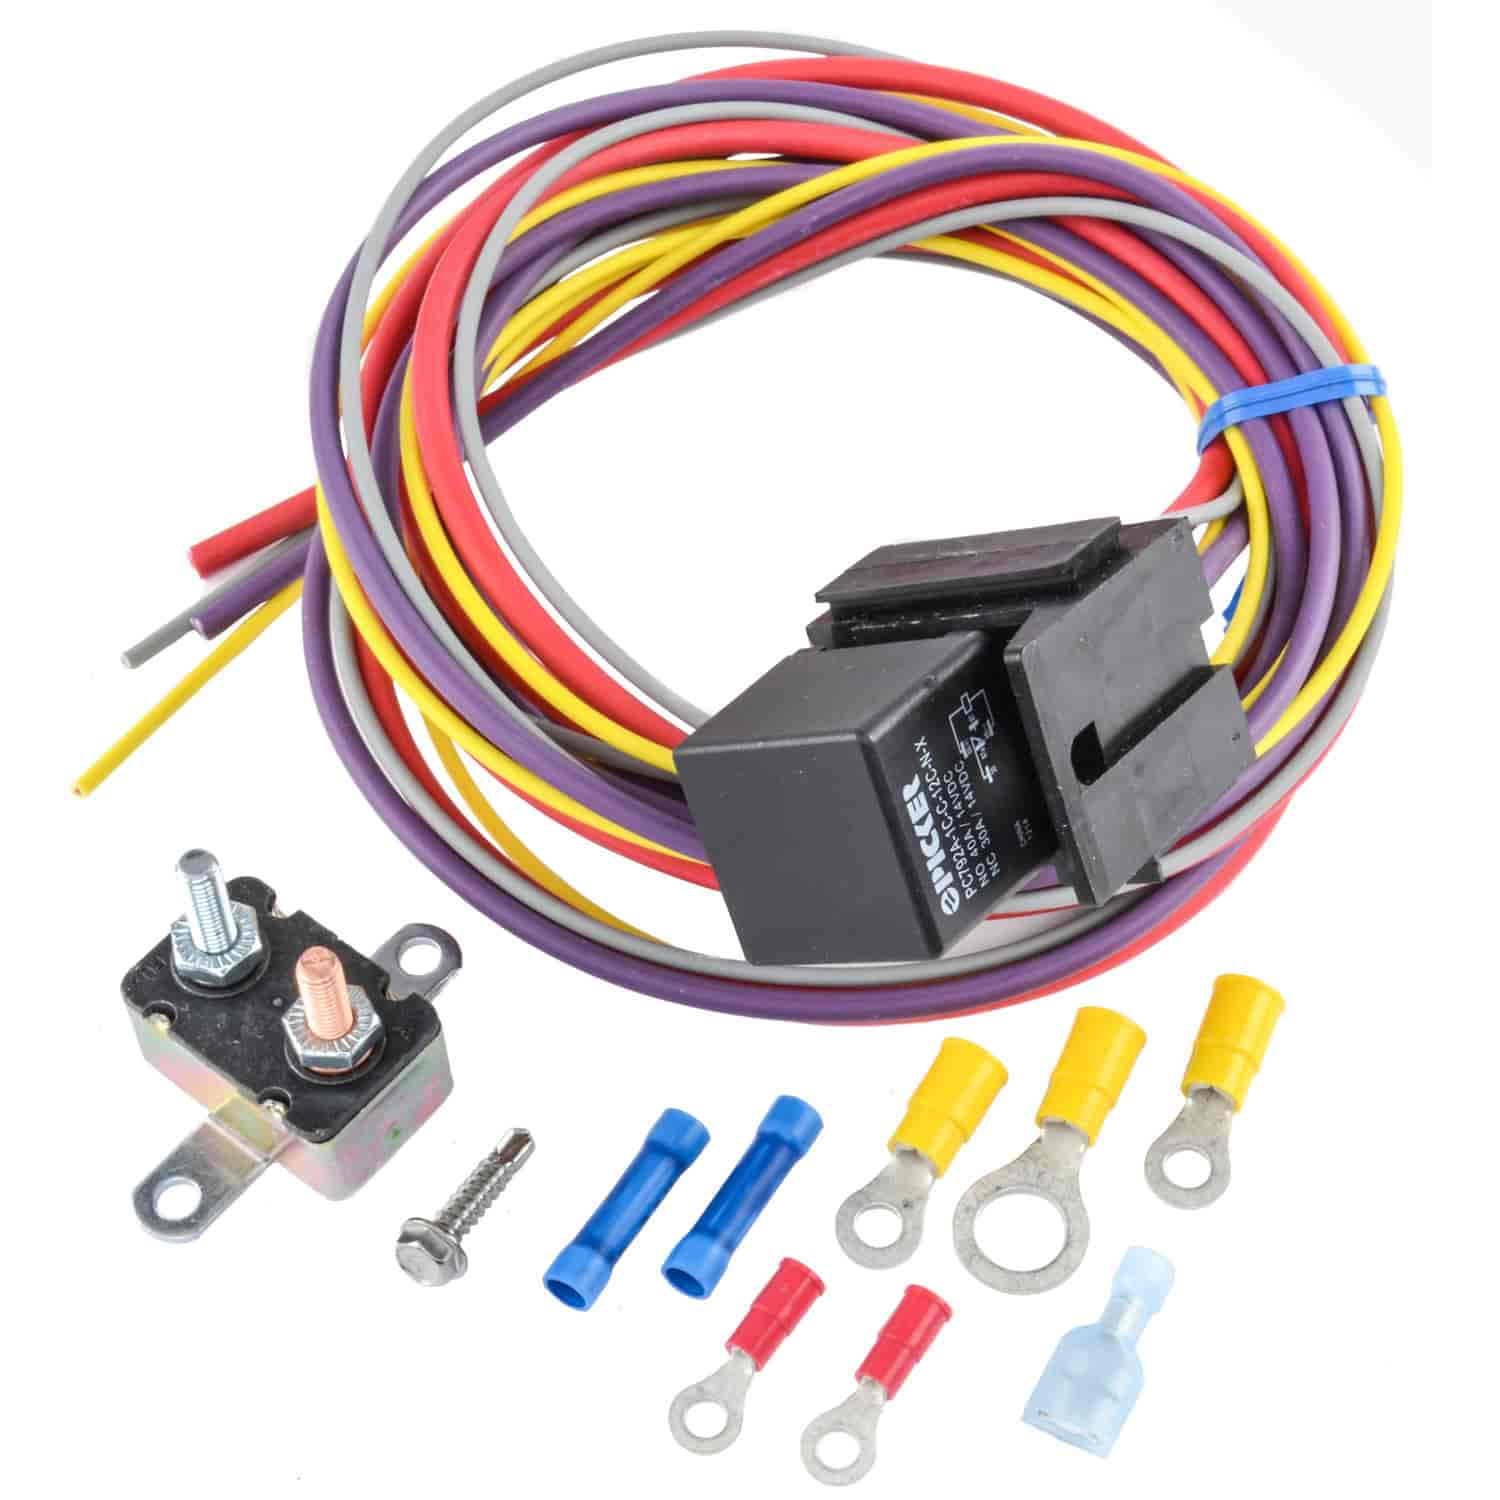 555 10559 jegs performance products 10559 manual controlled single fan jegs universal wiring harness at readyjetset.co